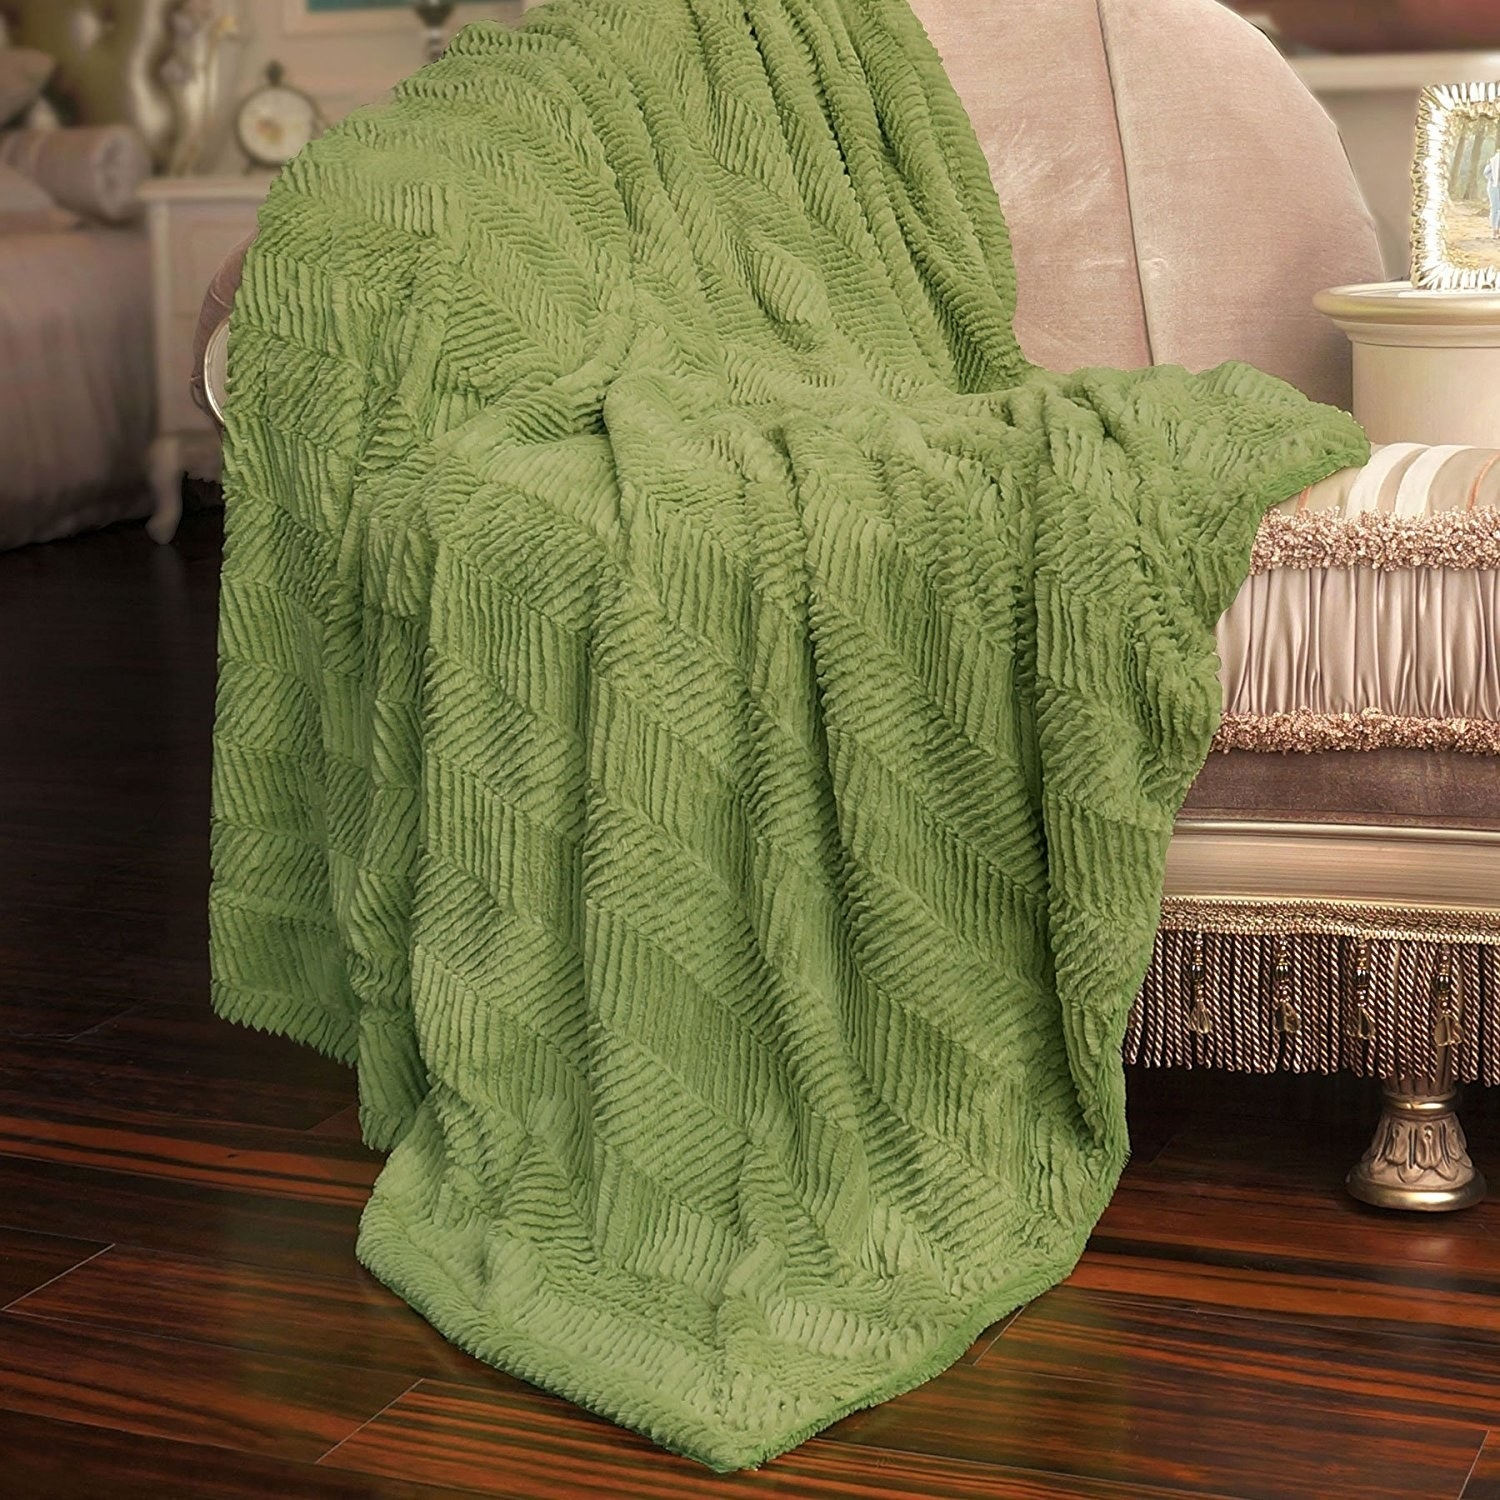 green herringbone texture blanket on a fancy couch